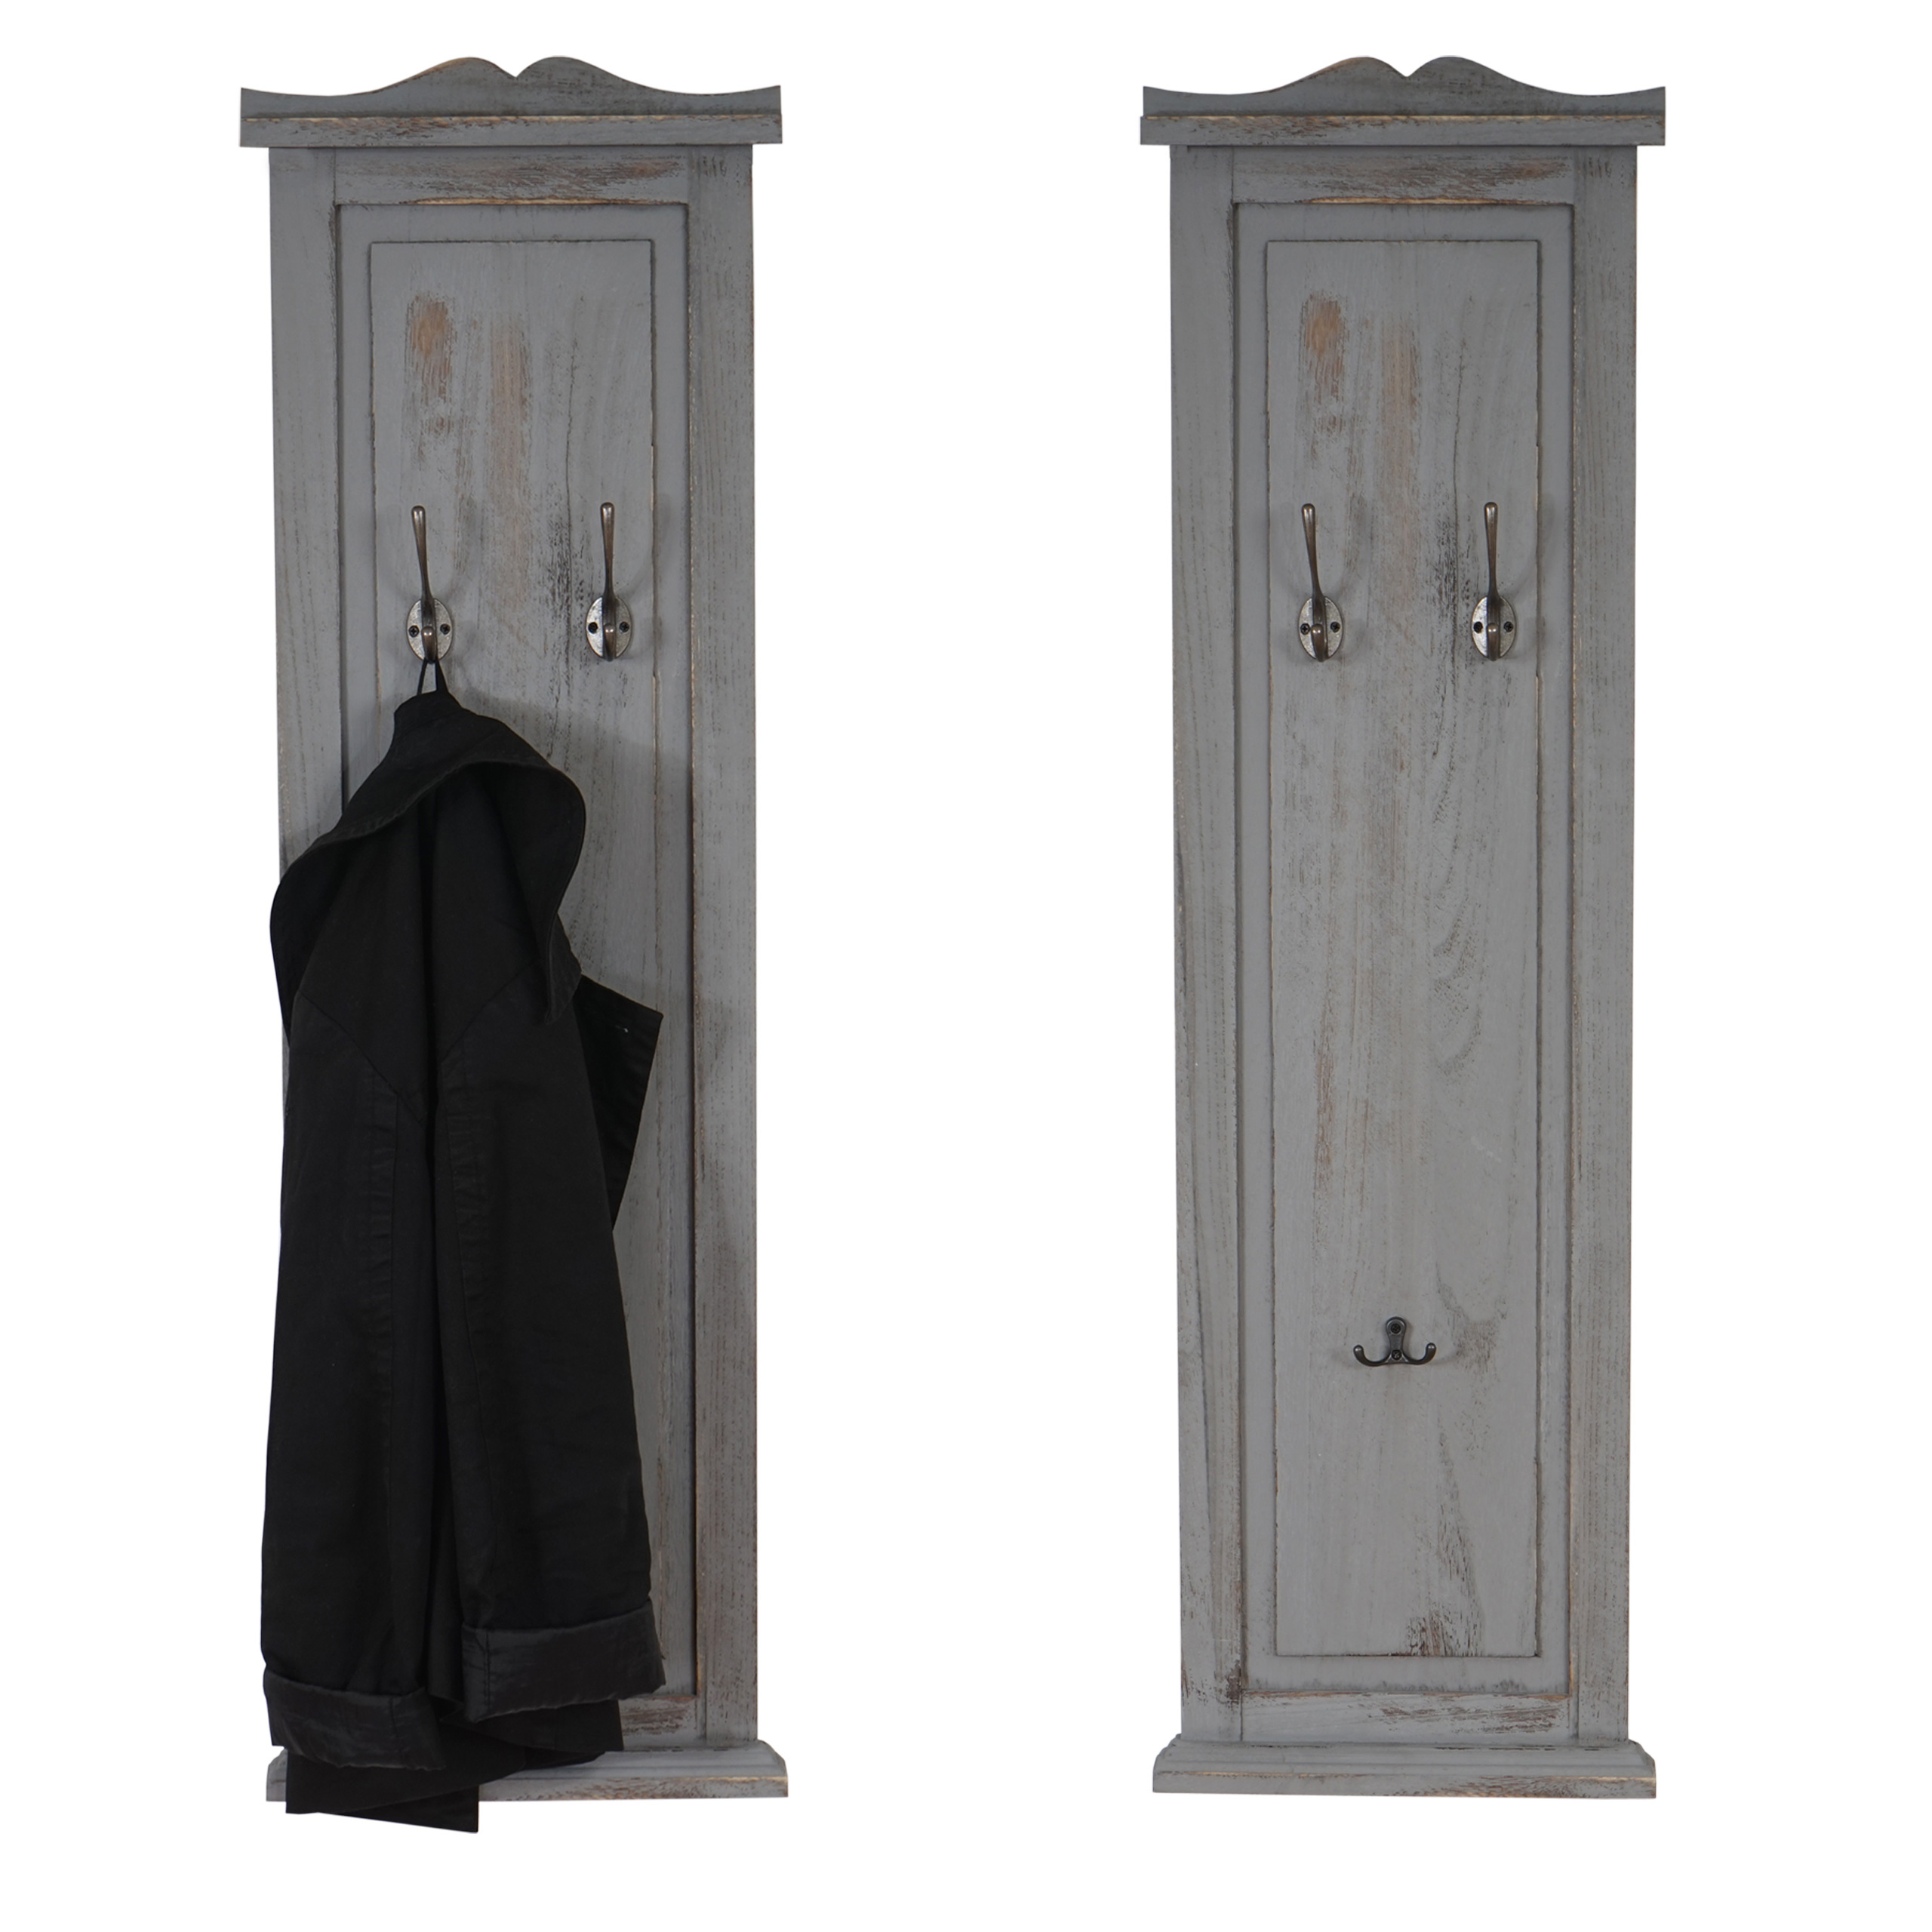 2x garderobe wandgarderobe garderobenpaneel wandhaken 109x28x4cm grau shabby. Black Bedroom Furniture Sets. Home Design Ideas